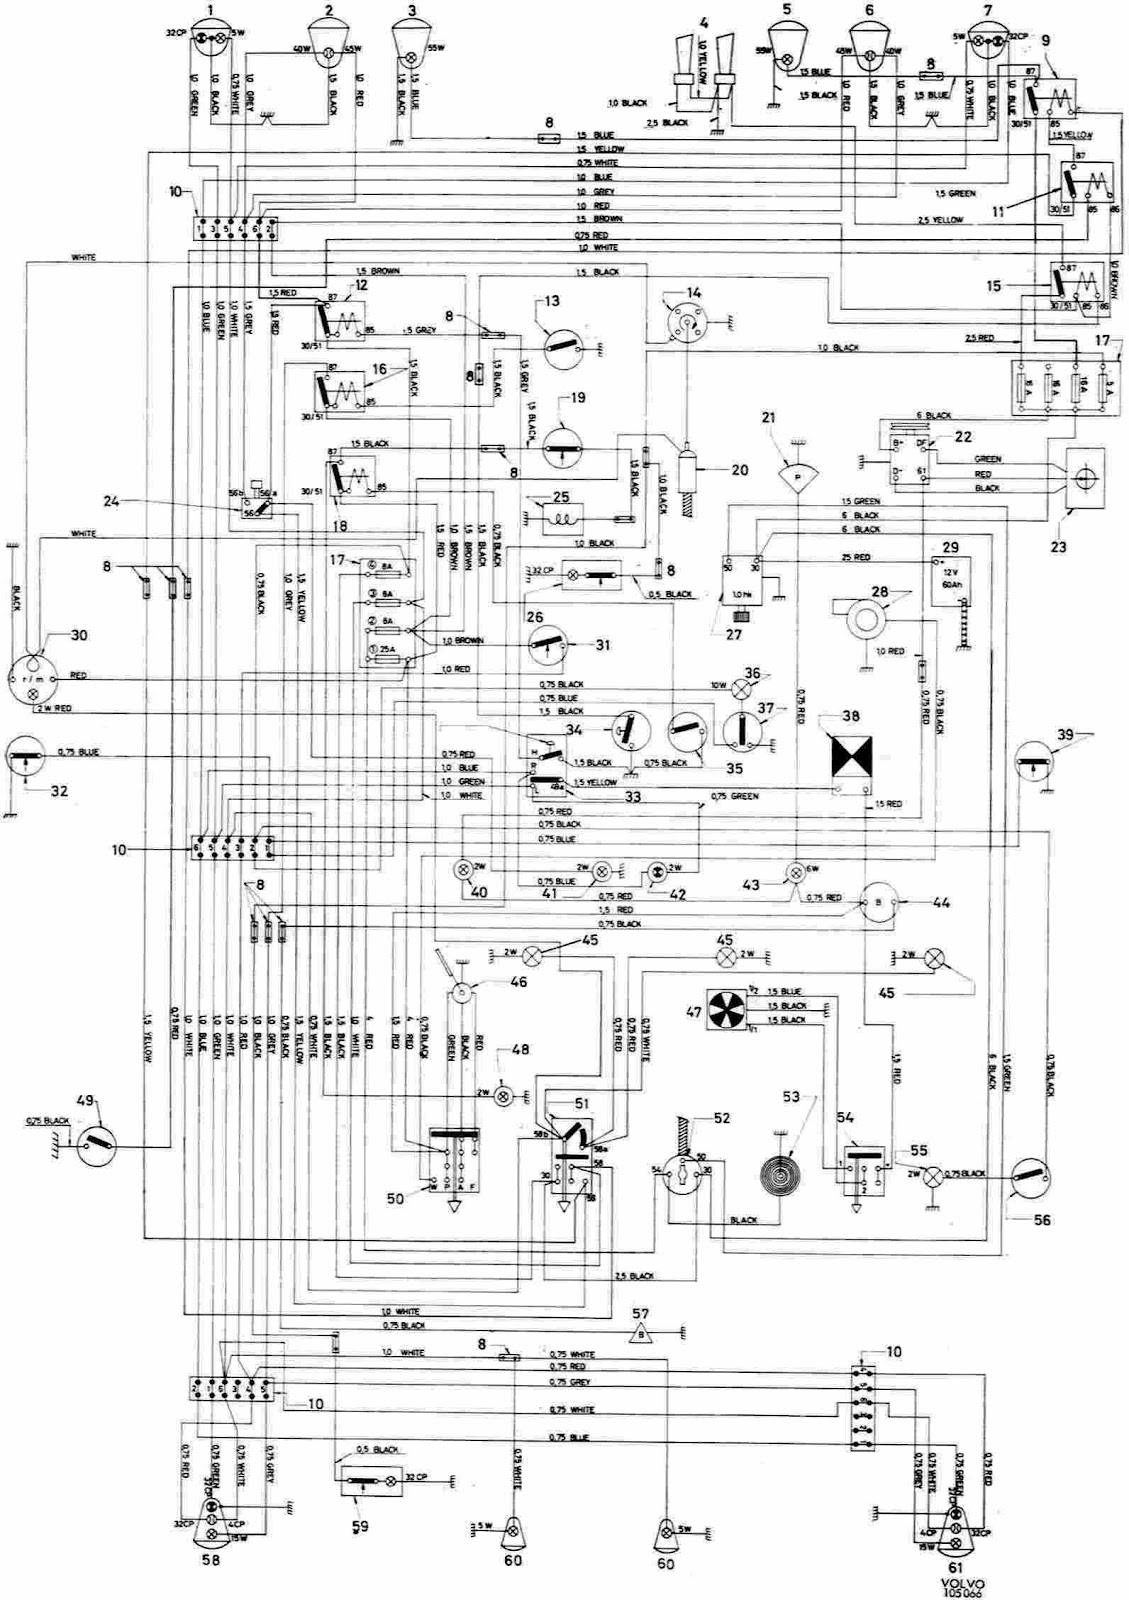 Volvo 123 GT Complete Wiring Diagram volvo v70 1998 wiring diagram pdf repair guides wiring diagrams 1996 volvo 850 wiring diagrams pdf at cos-gaming.co